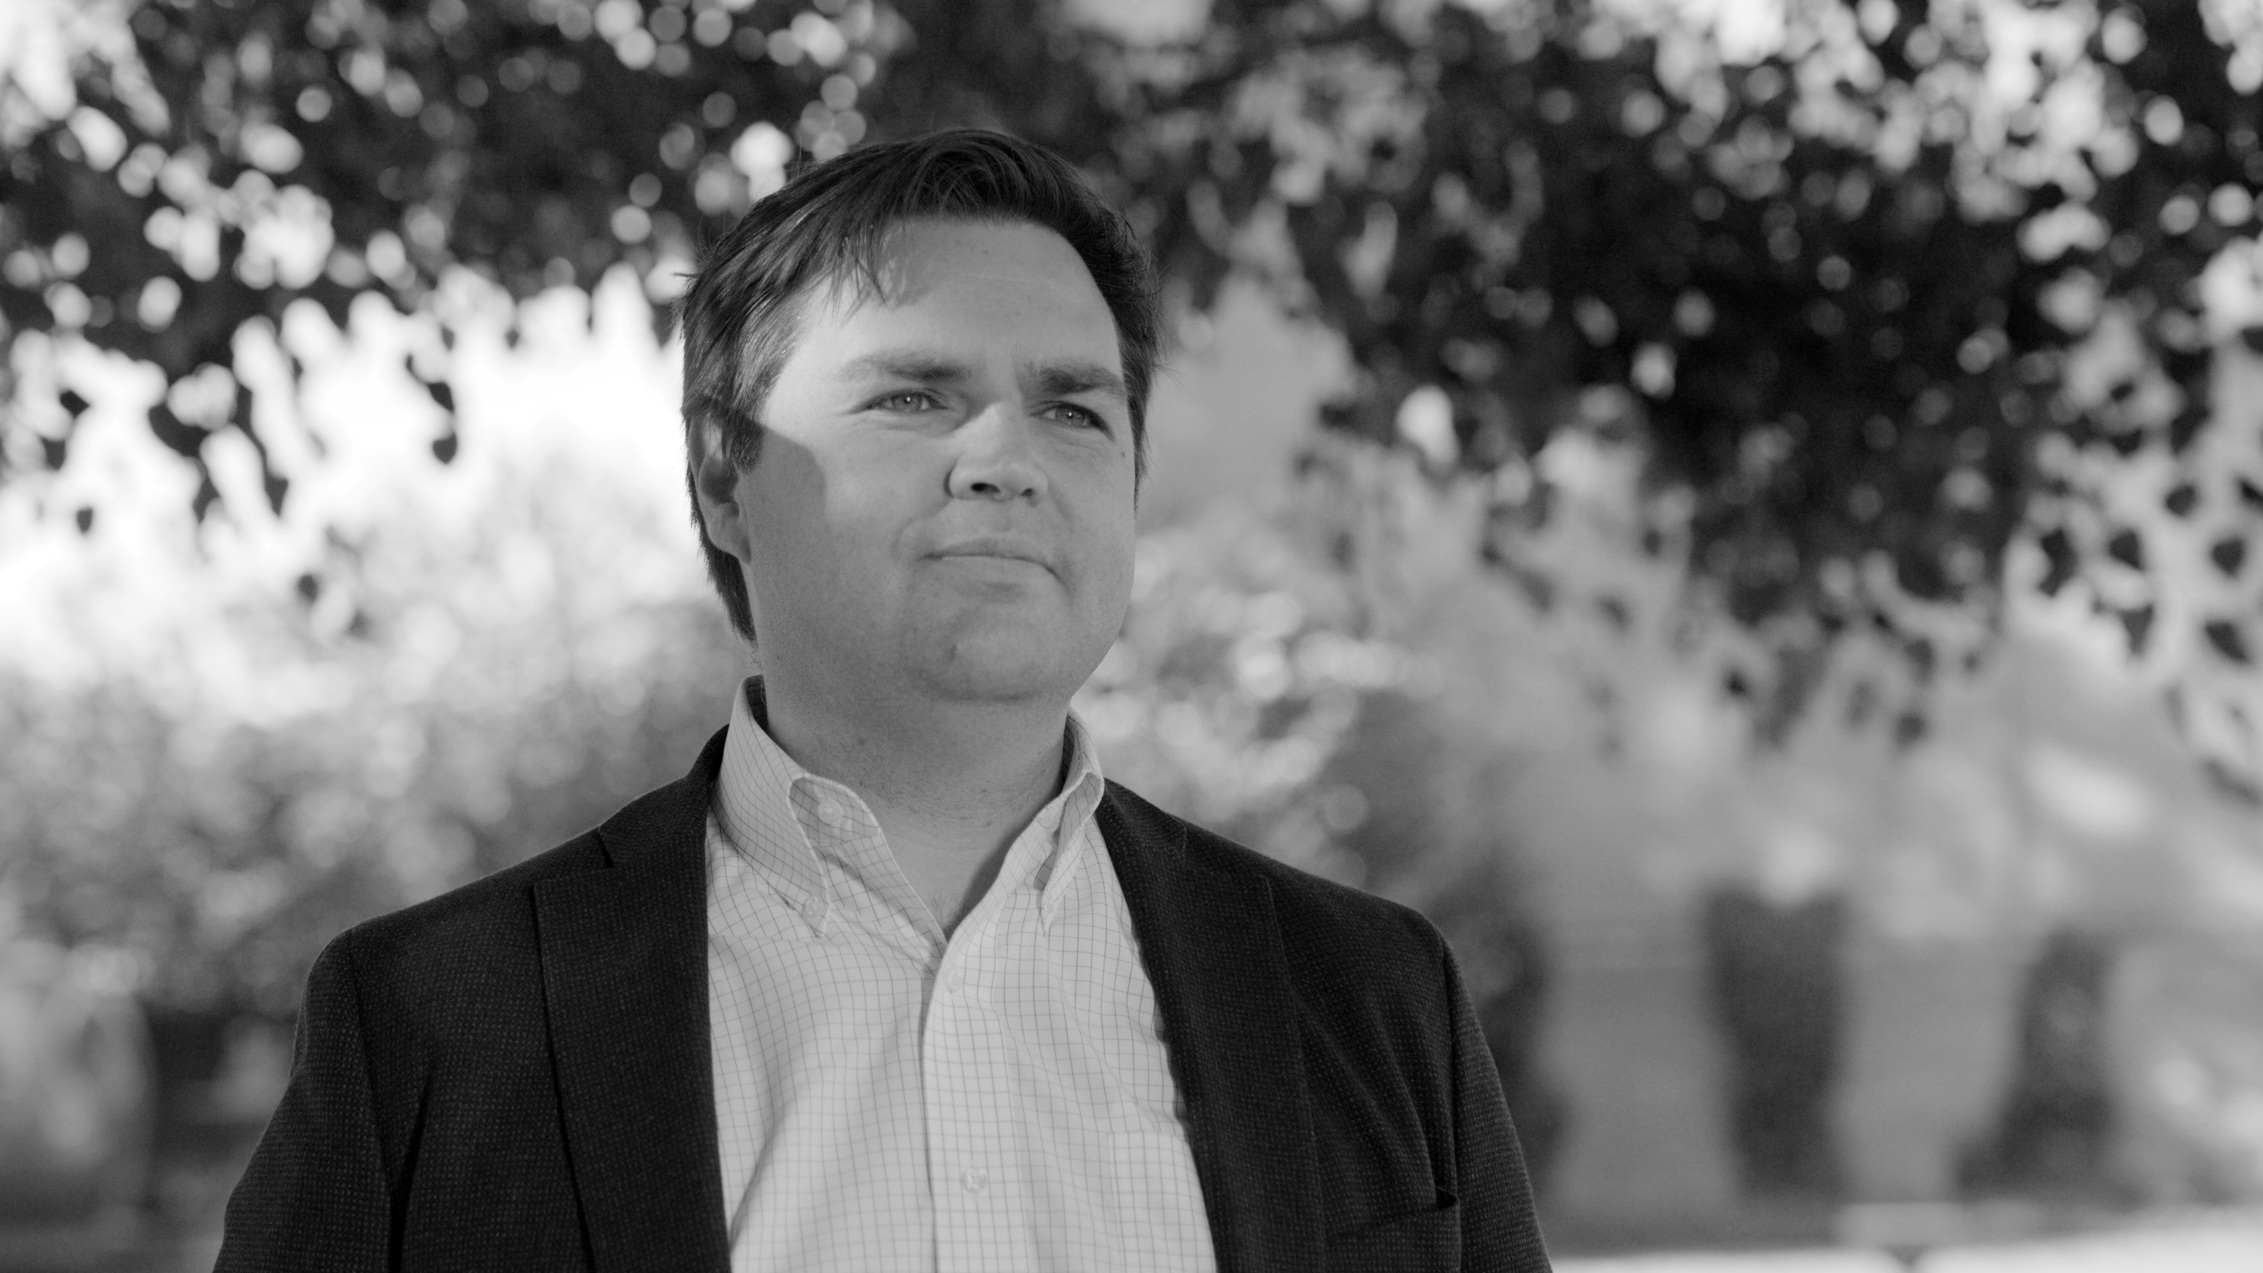 """""""We care about investing in distressed communities and the opportunity zones legislation is built around just that."""" - J.D. VanceAuthor of New York Times Bestselling Memoir, Hillbilly Elegy & Managing Partner at Rise of the Rest Seed Fund"""